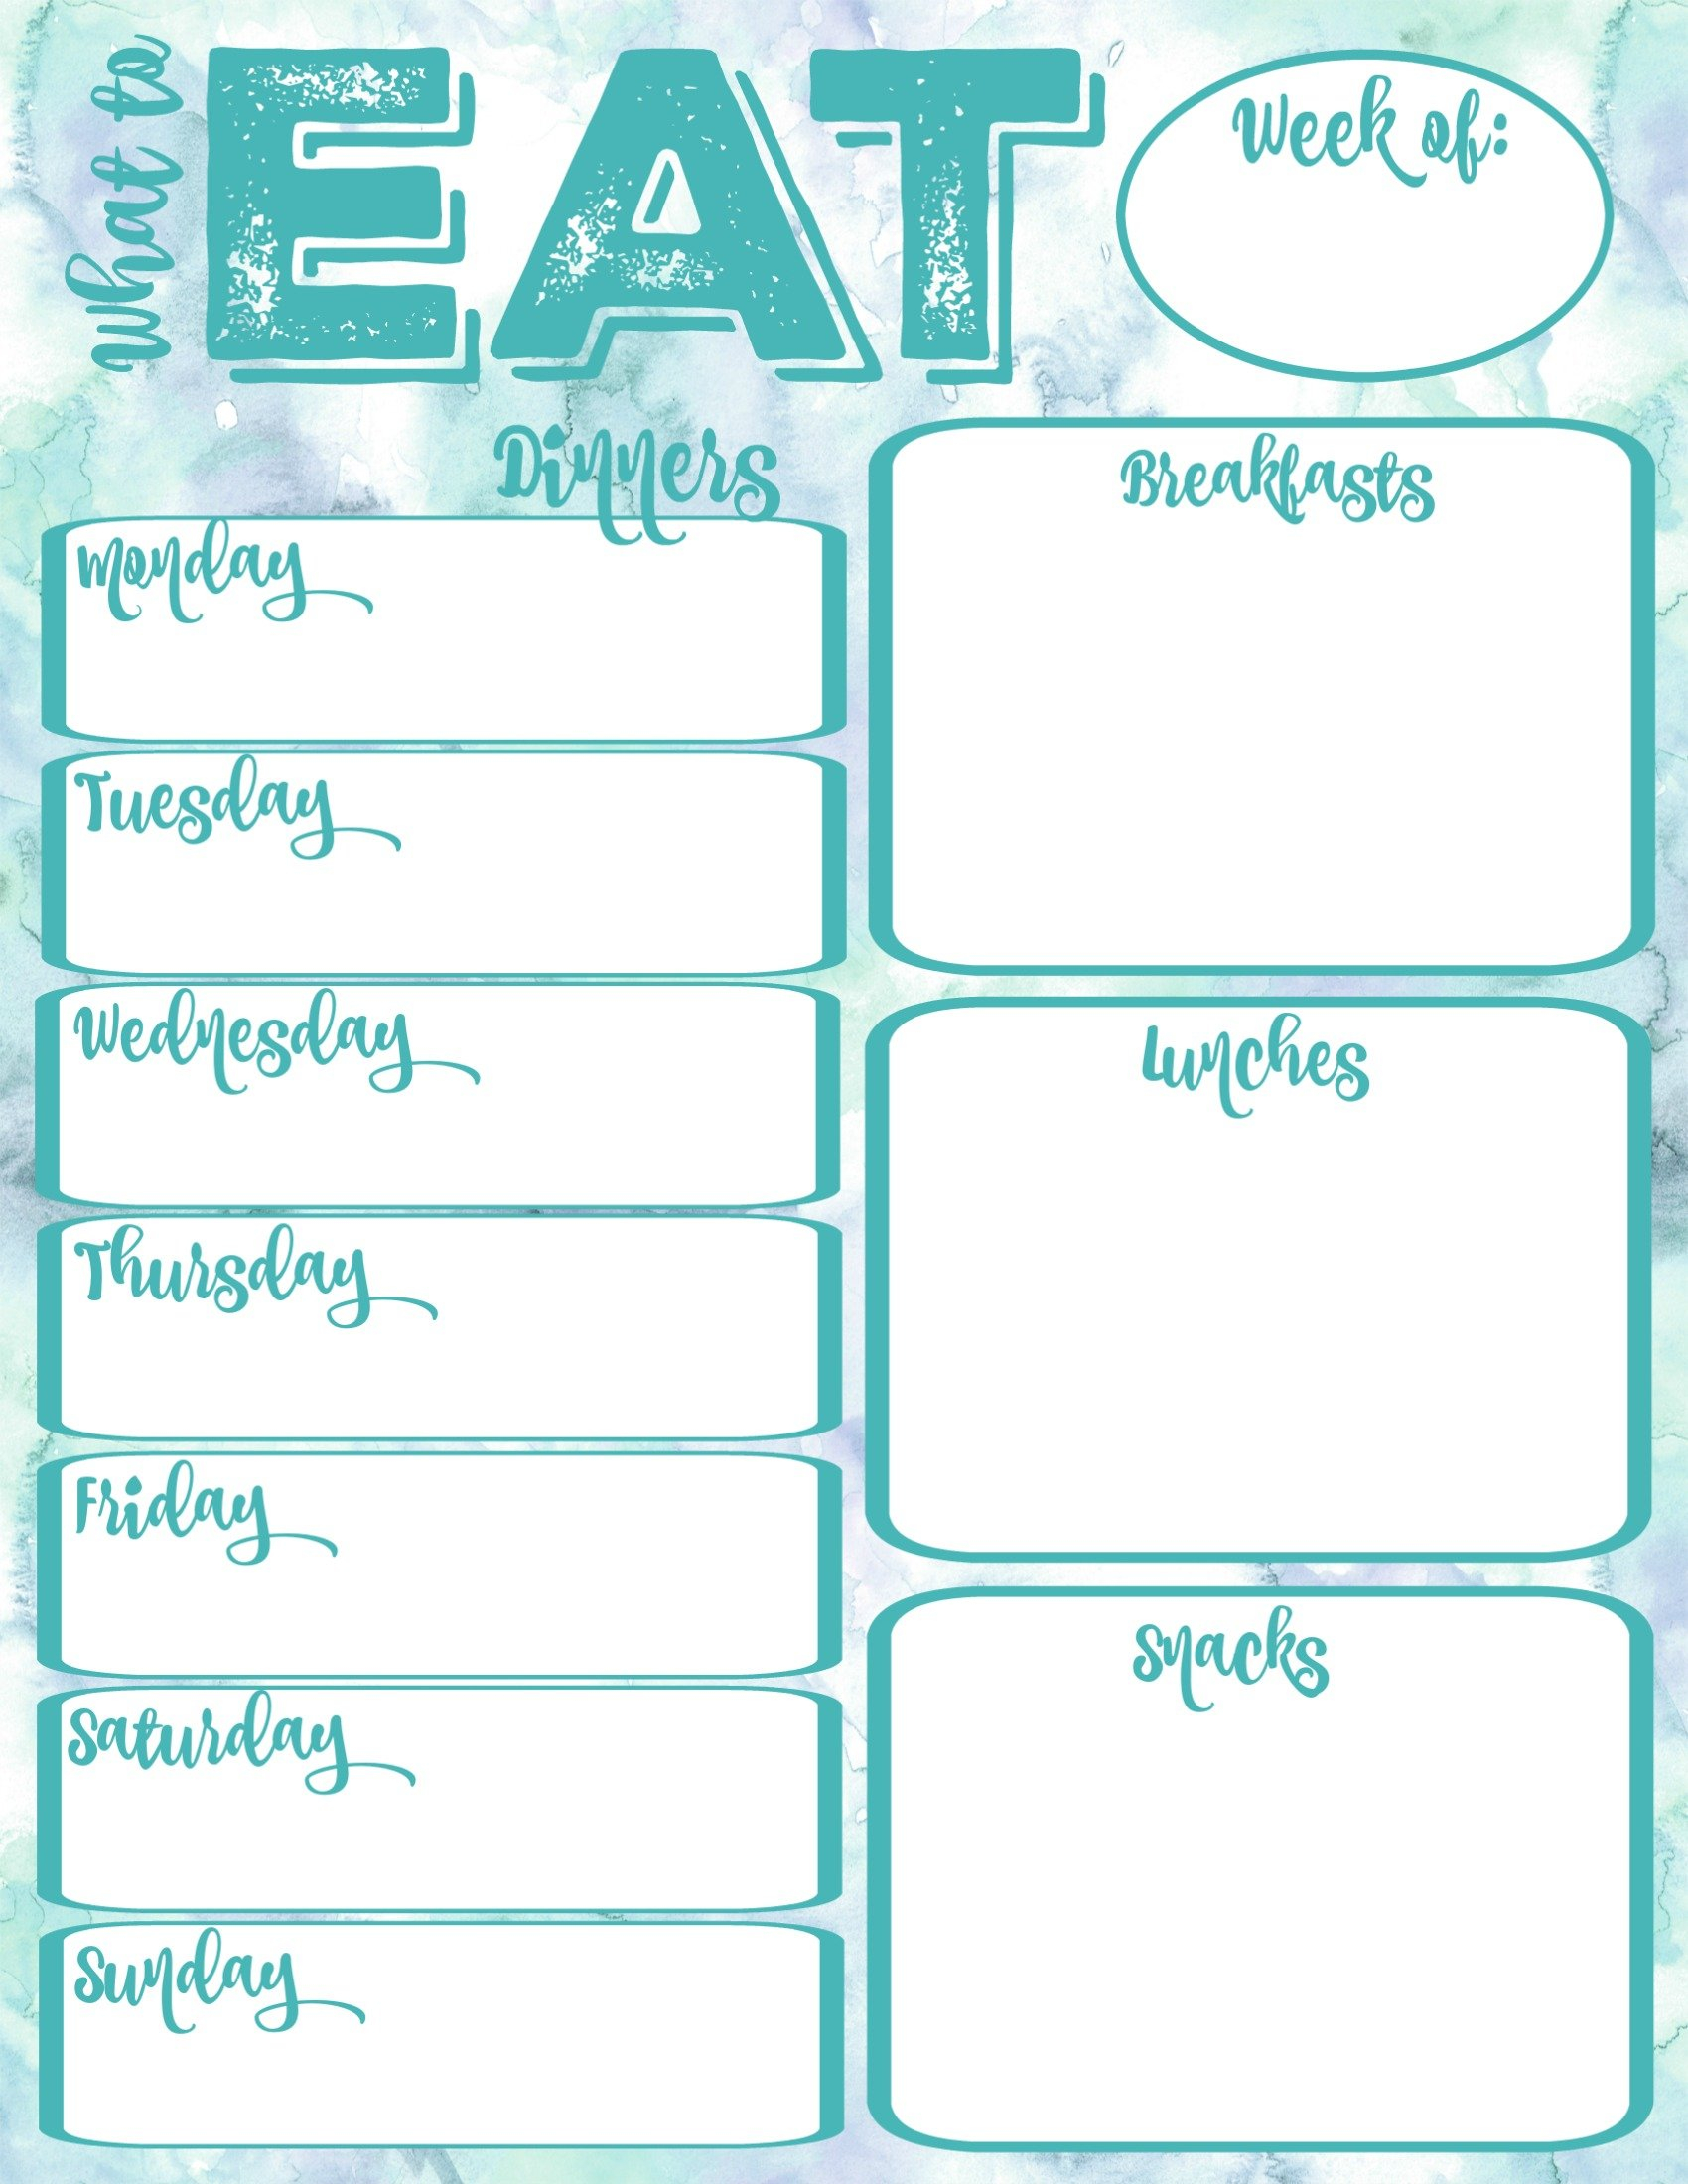 Pantry Makeover: Free Printable Weekly Meal Planner And Shopping List Planner | The Happy Housie throughout Free Meal Planner Printable